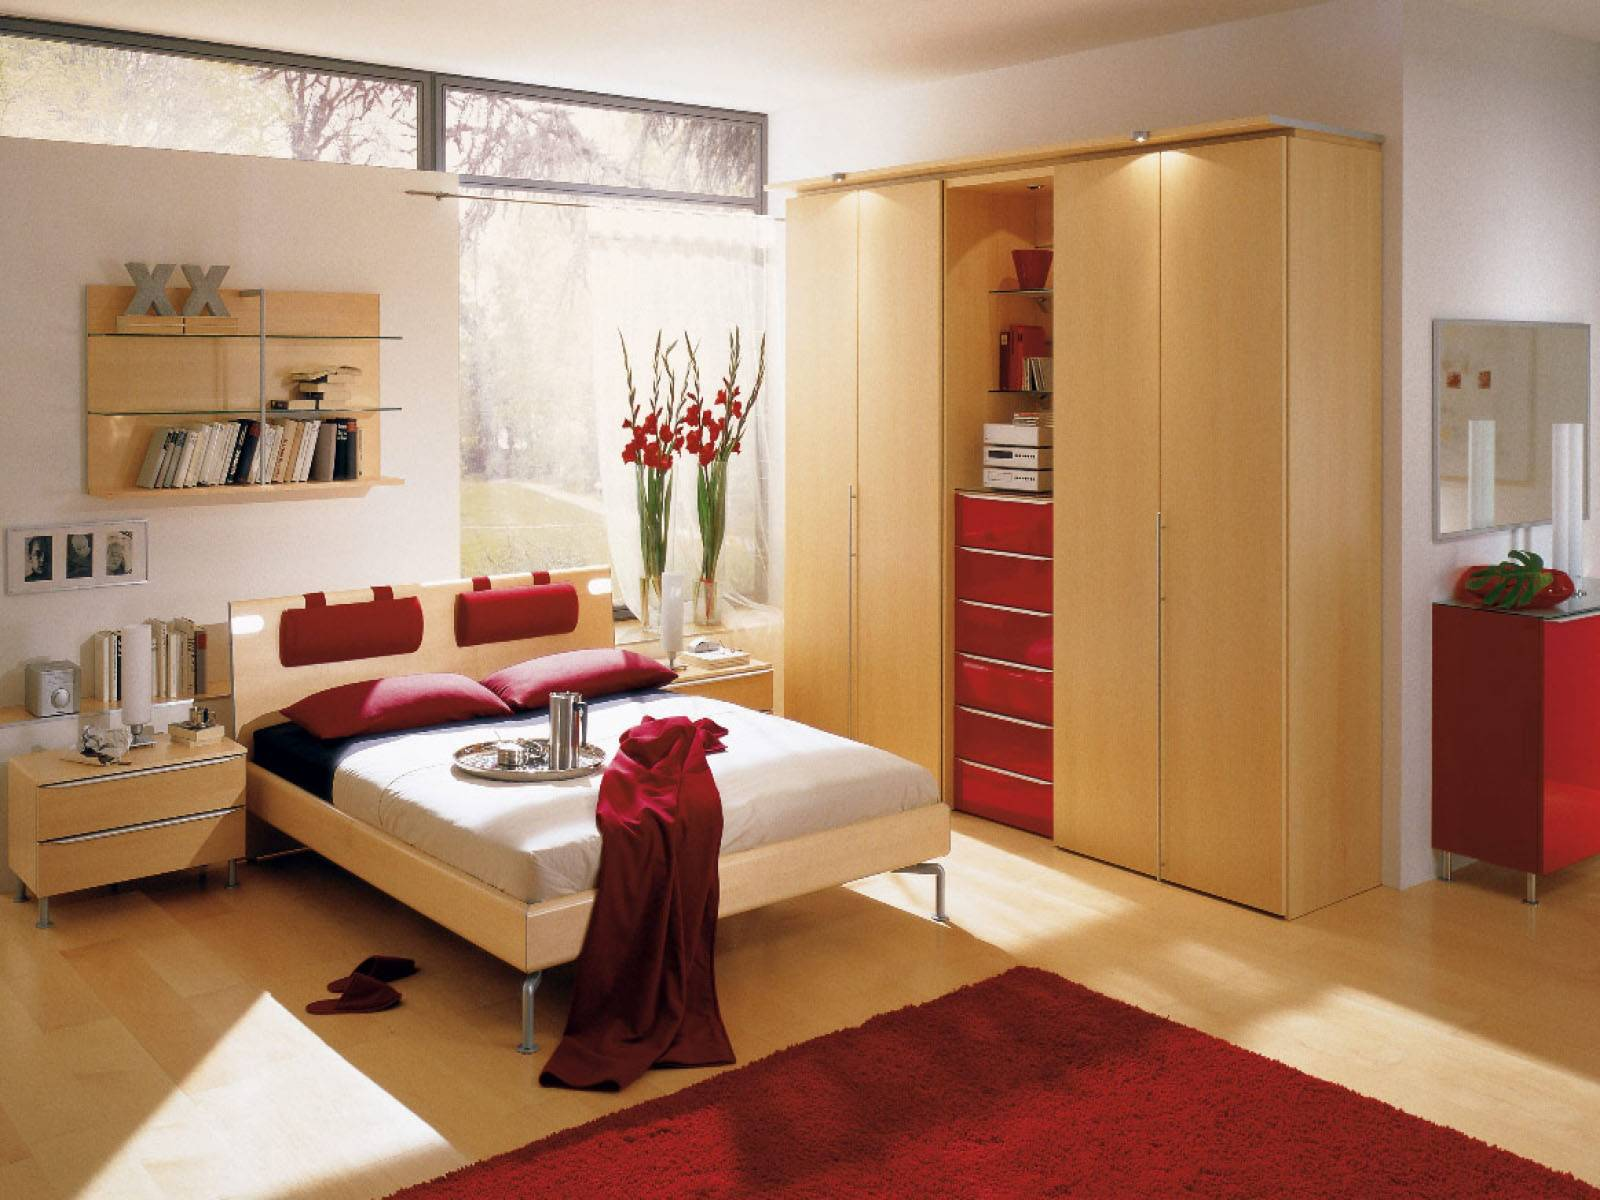 Bedroom Decorating Ideas On A Small Budget - Interior ... on Bedroom Decoration Ideas  id=18591